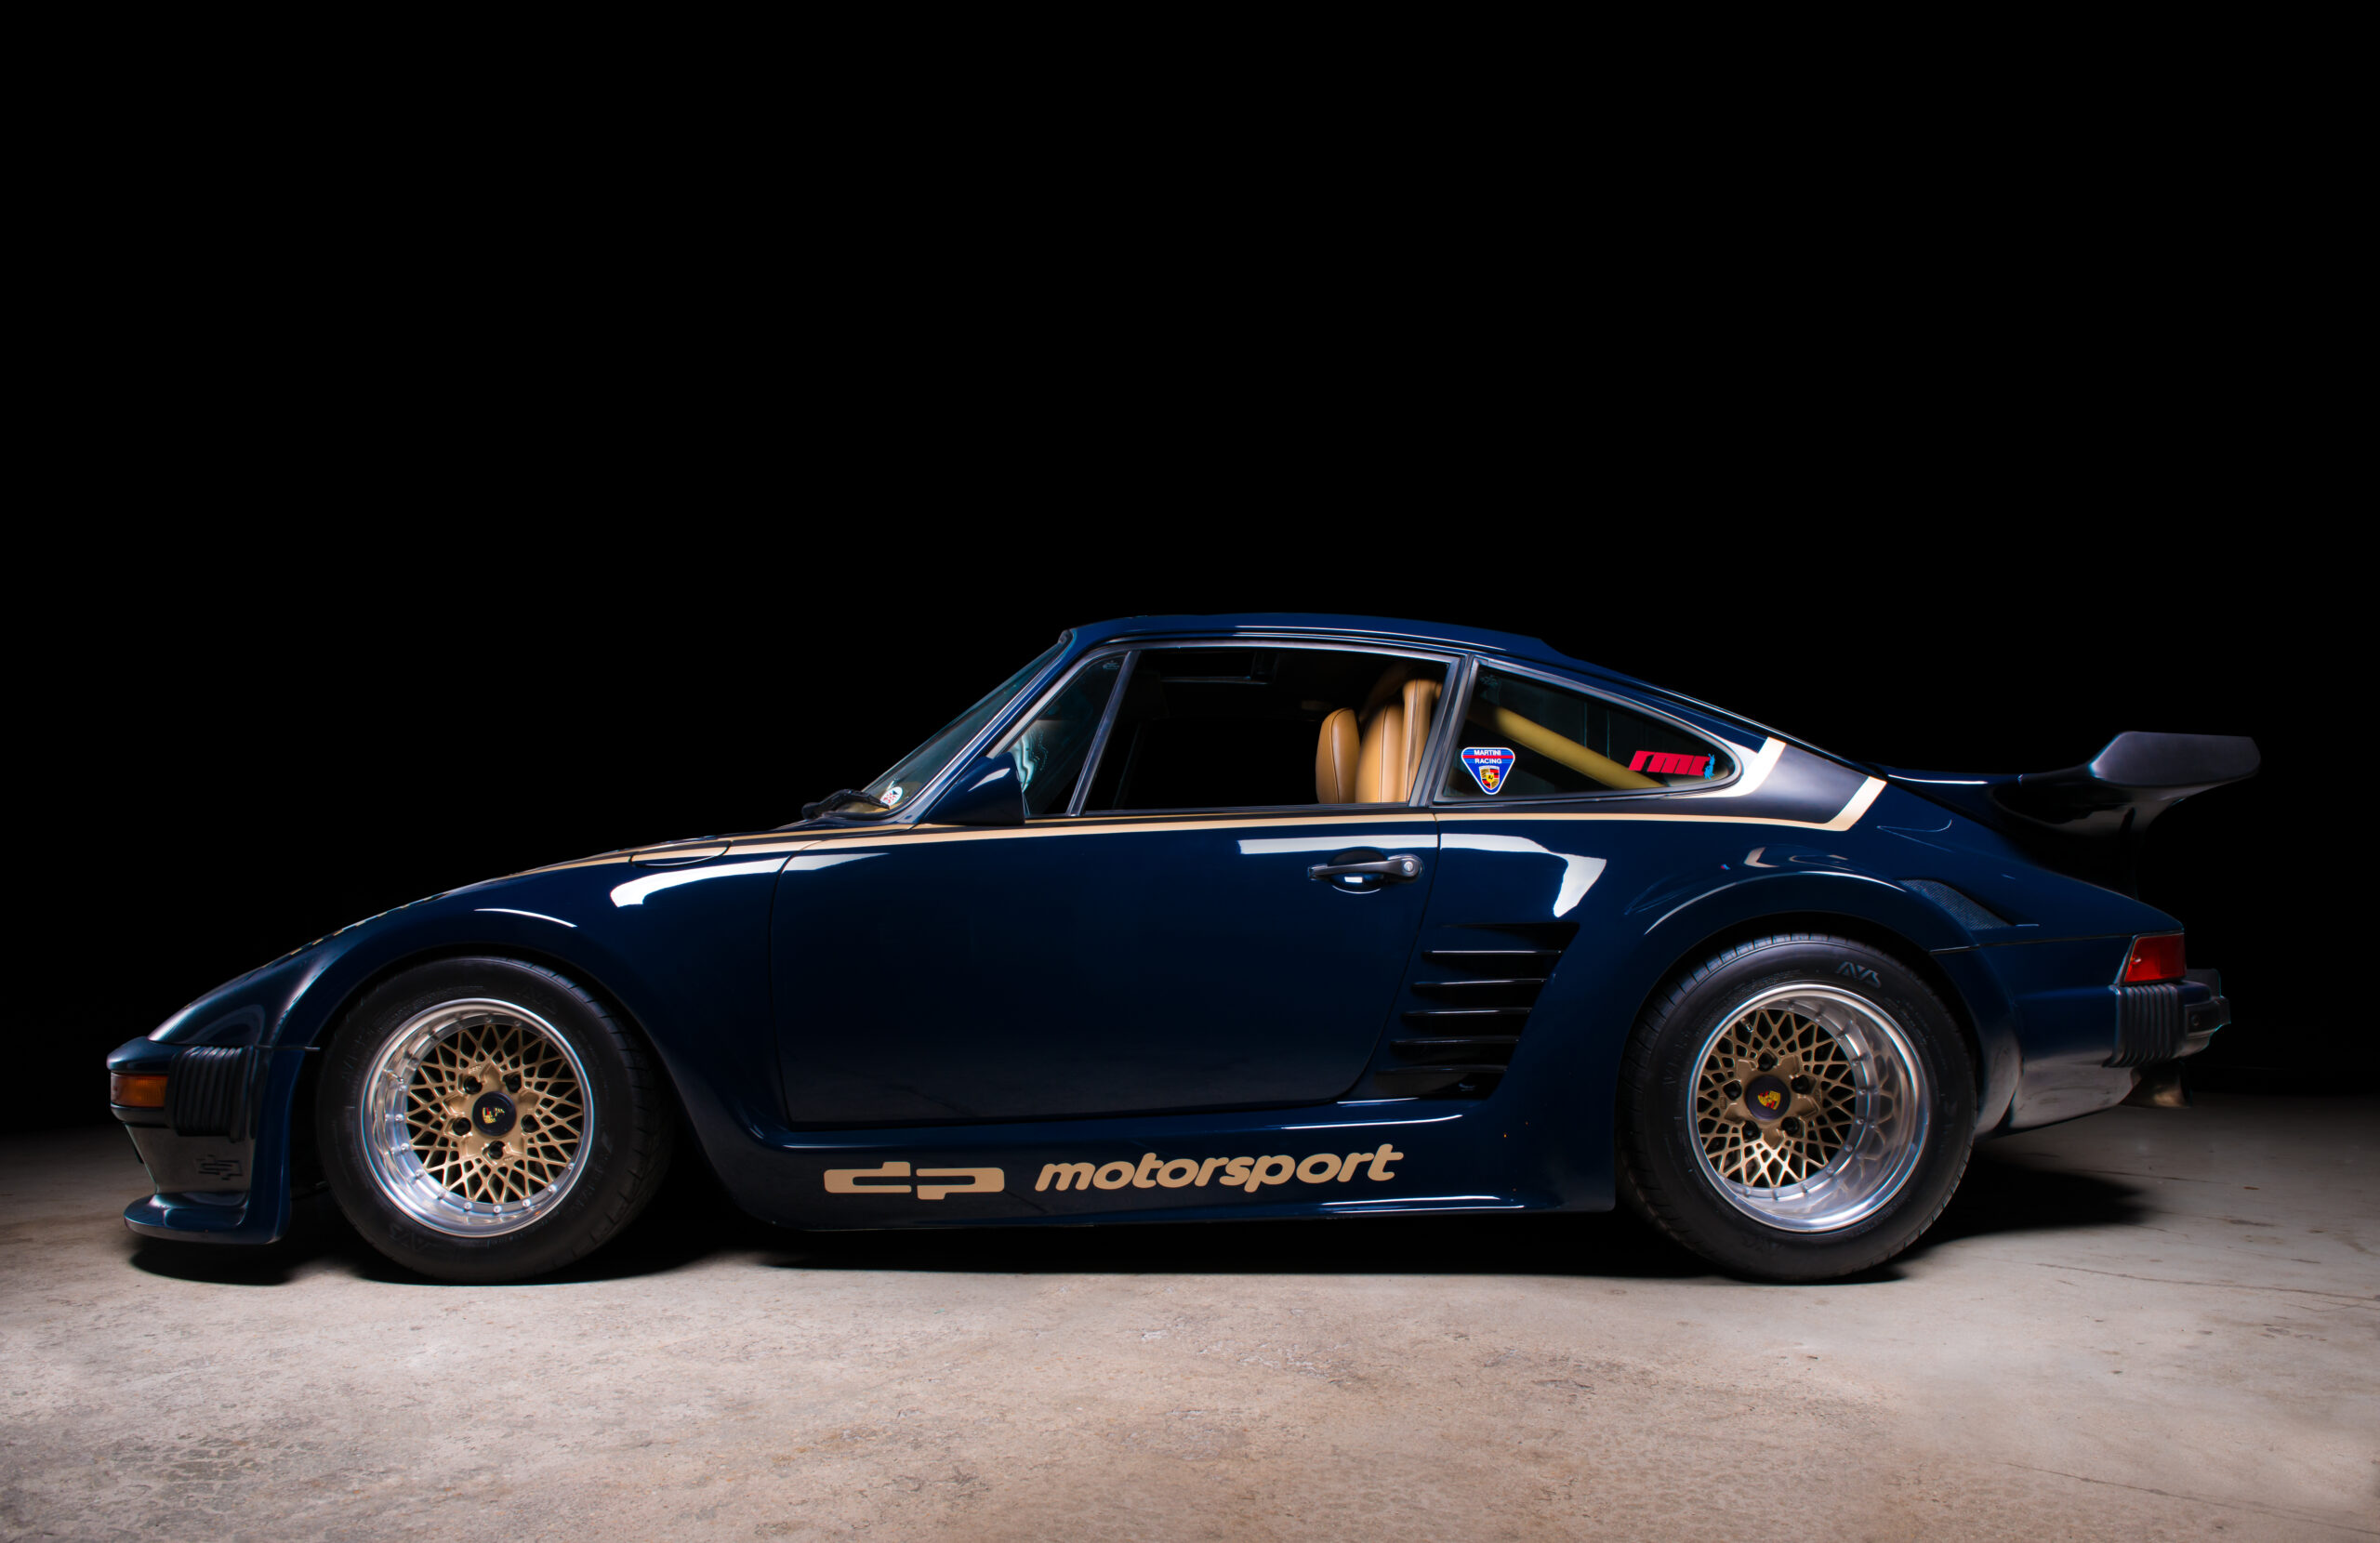 1985 Porsche Turbo 935/930 DP Motorsport dp Motorsport / Kremer 935 TURBO built for MARIO ANDRETTI